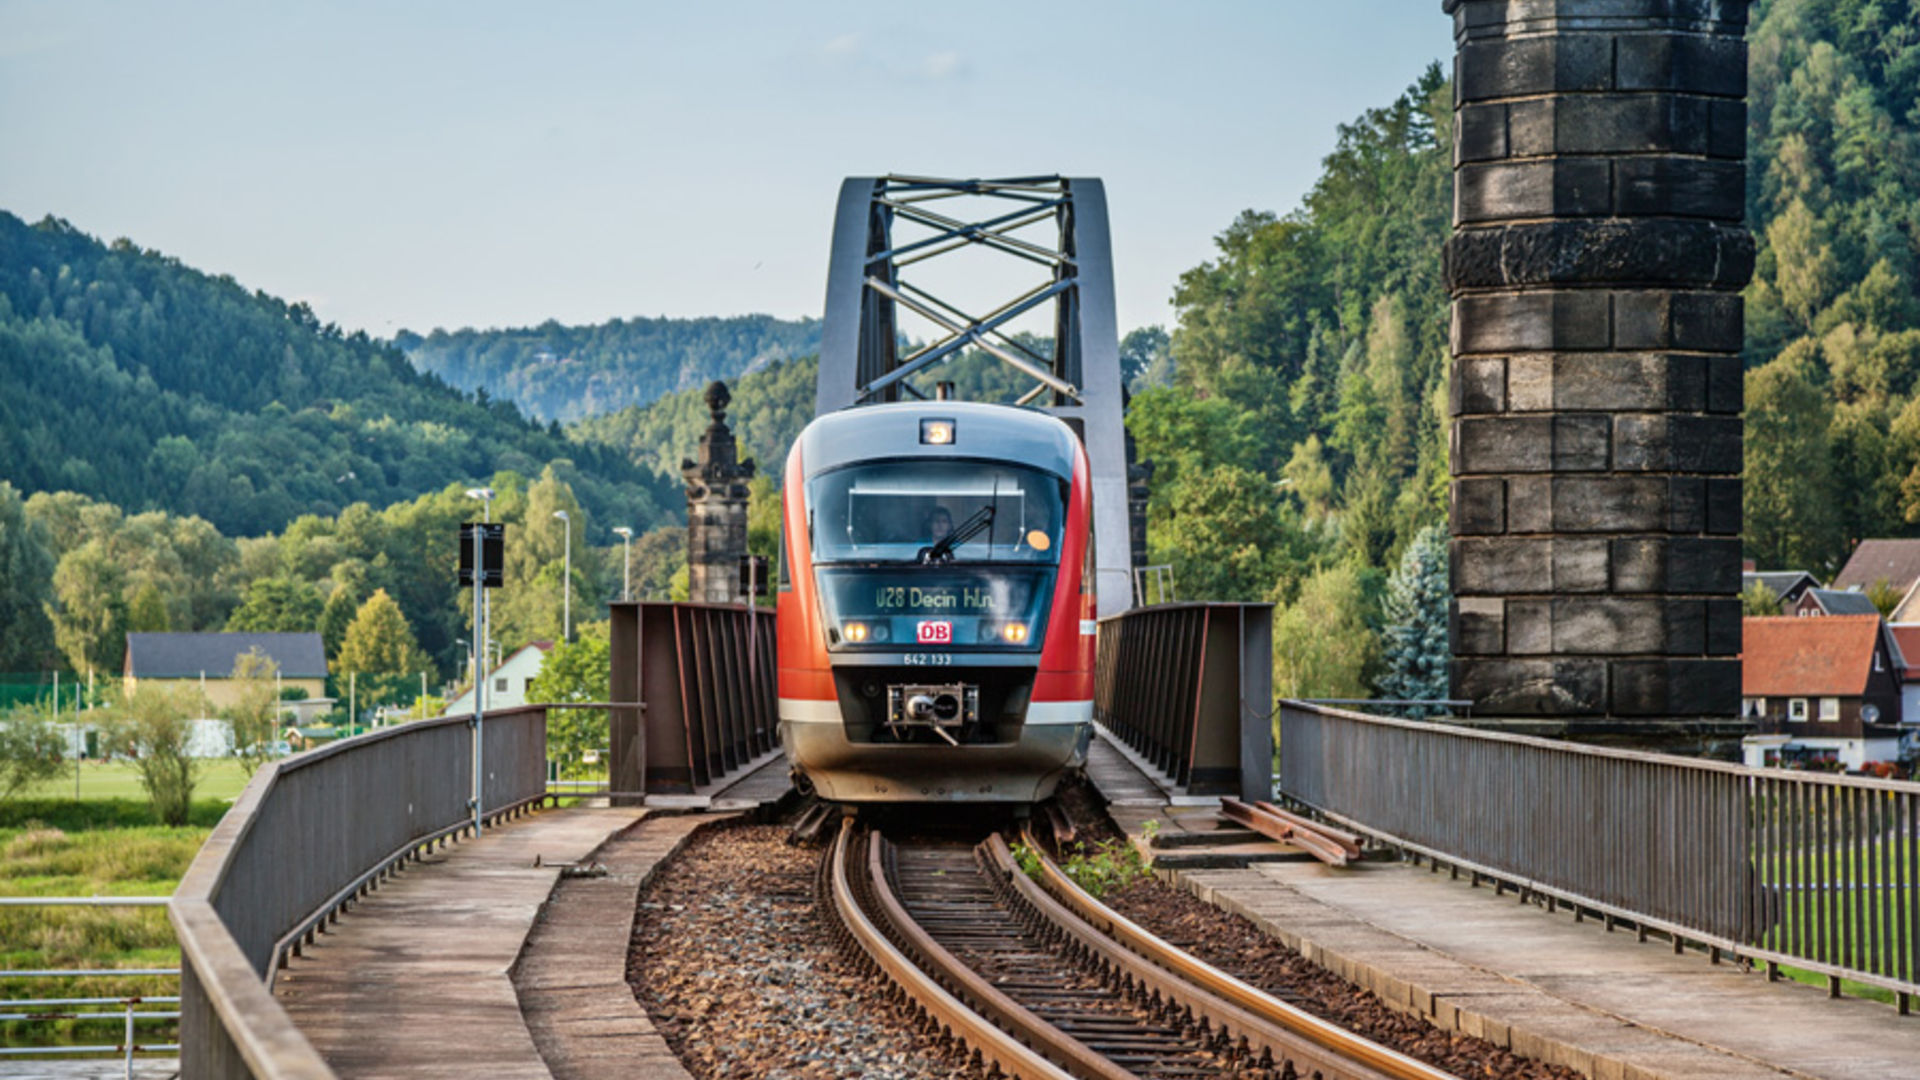 Nationalparkbahn U28 in Bad Schandau 